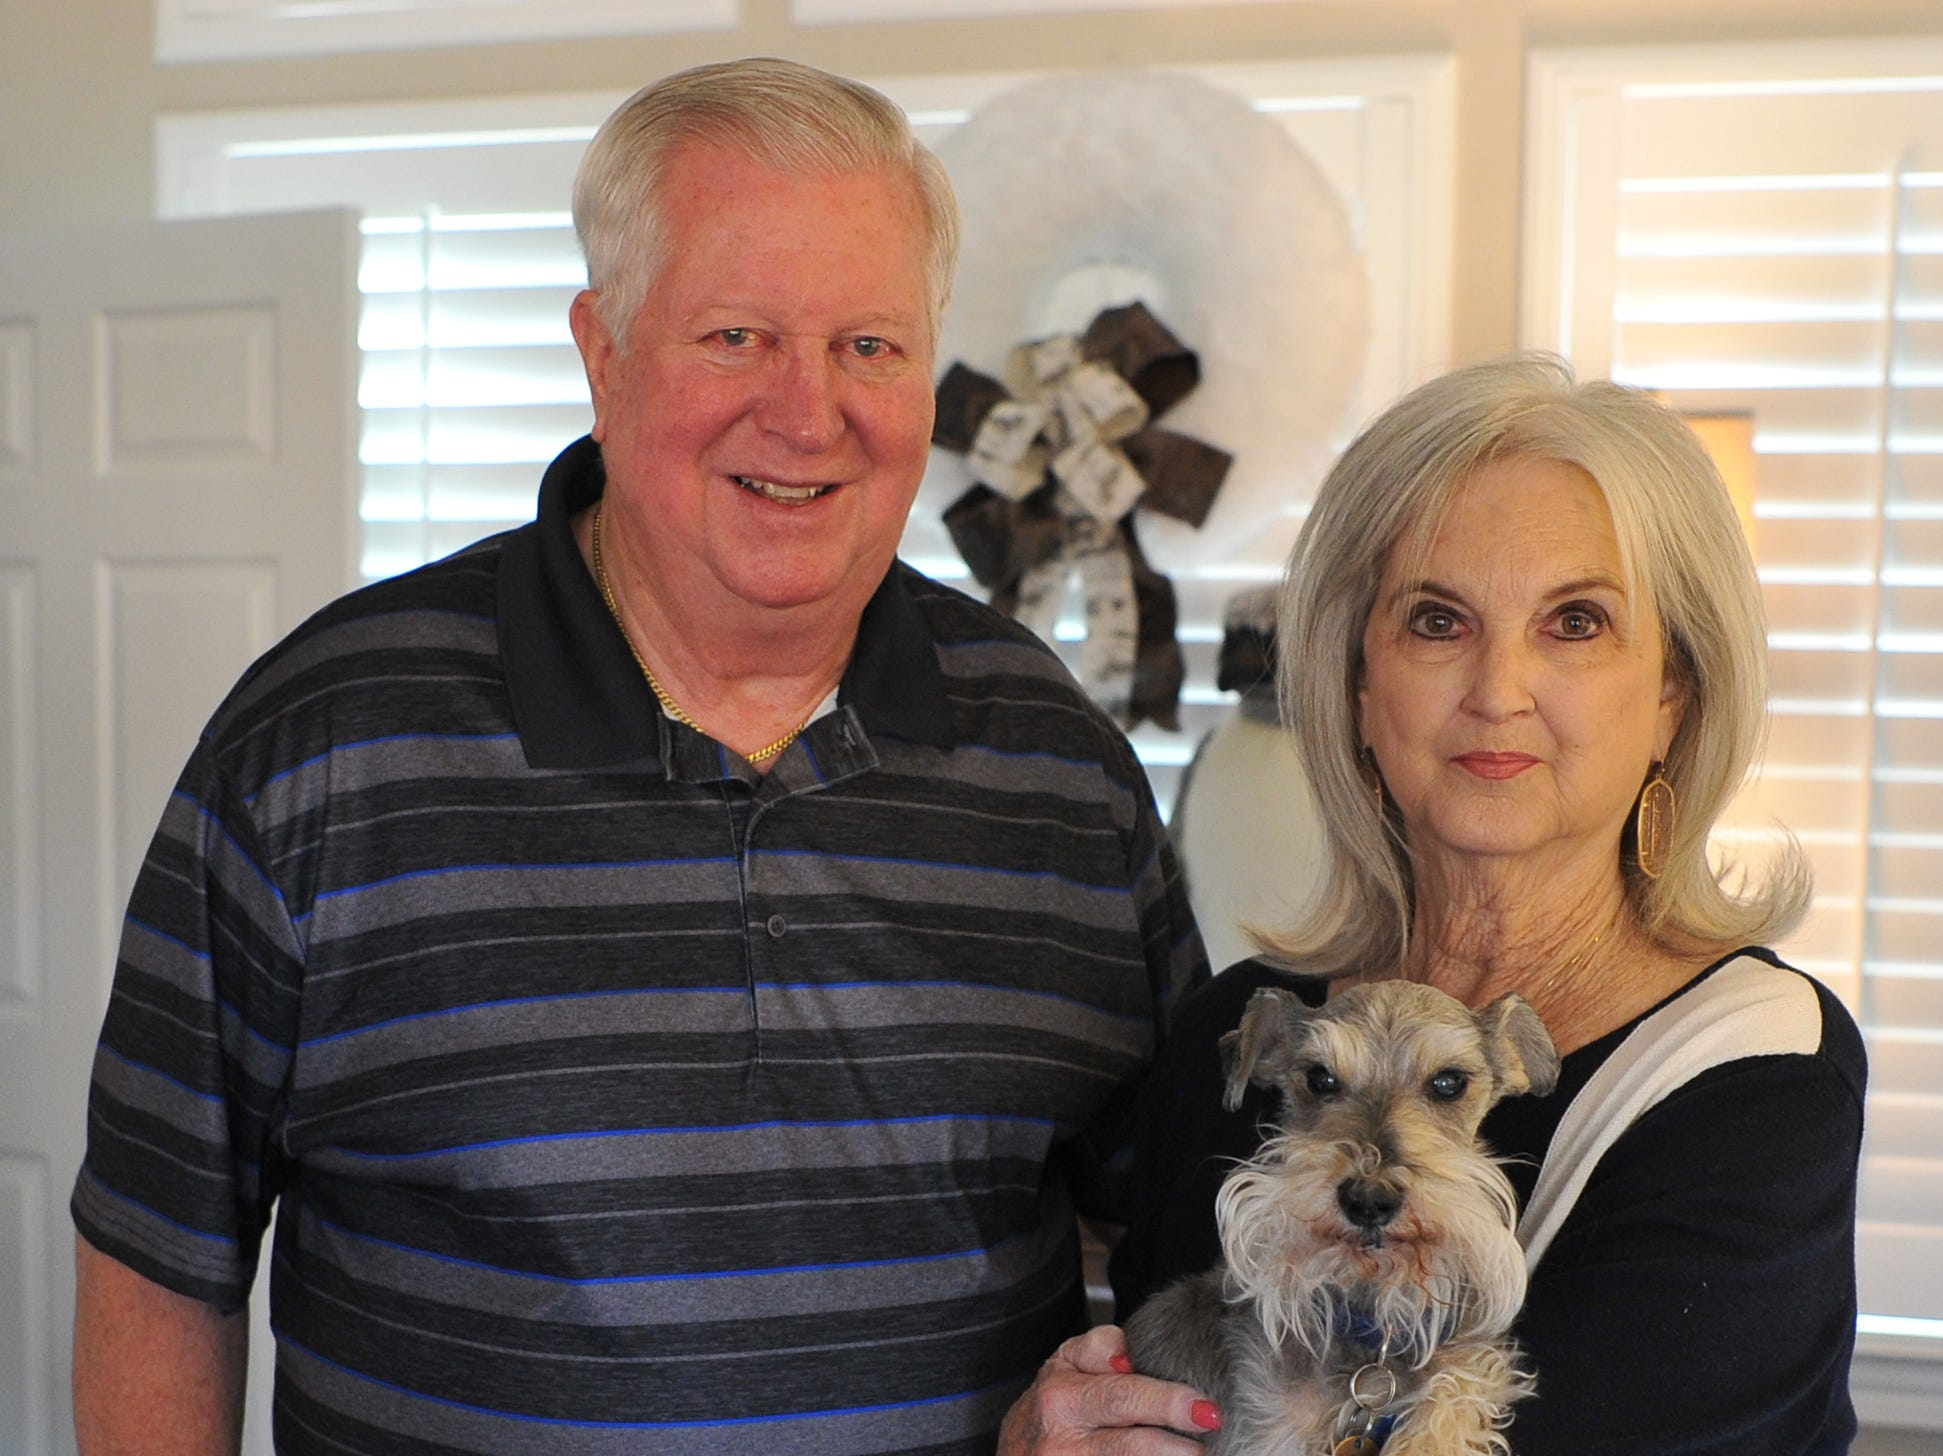 Dwight and Mary Ann Recht pose for a photo with their dog, Chipper after giving the TRN a tour of their home. The Recht's home will be one-of-several that will be part of the 39th annual Christmas Tour of Homes.